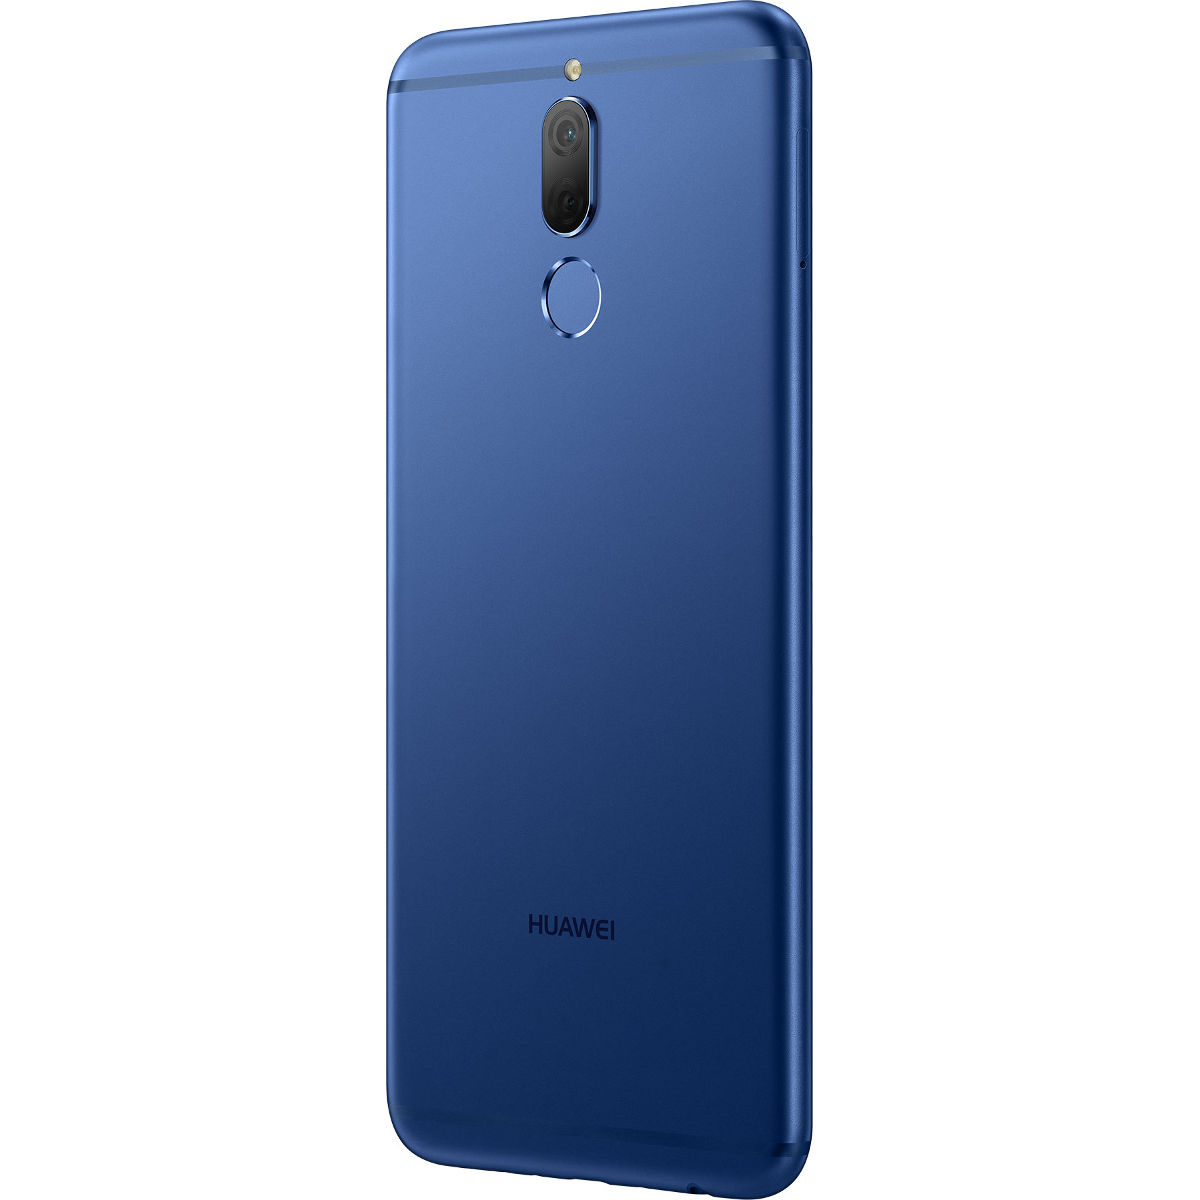 huawei mate 10 lite dual sim 4g bleu coque transparente achat pas cher avis. Black Bedroom Furniture Sets. Home Design Ideas